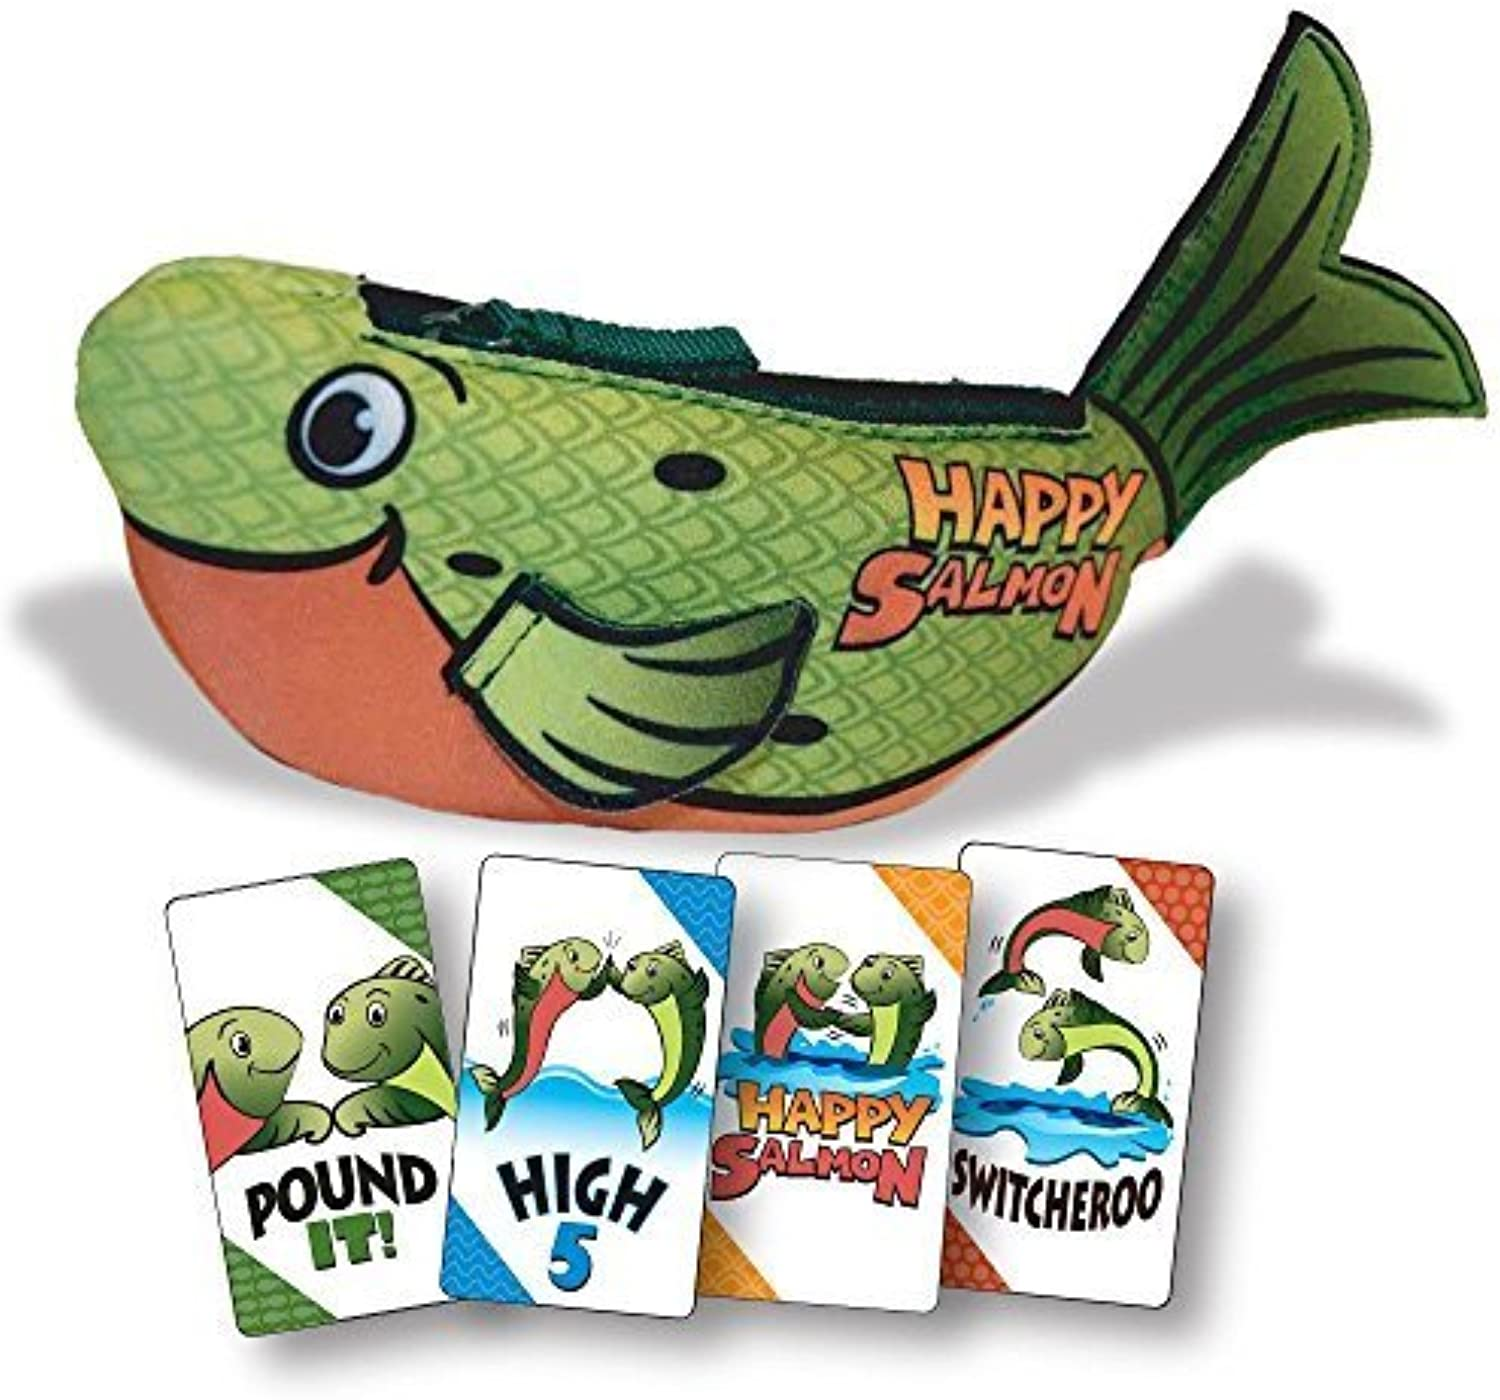 Happy Salmon Game - Card Game by North Star Games (600) by North Star Games